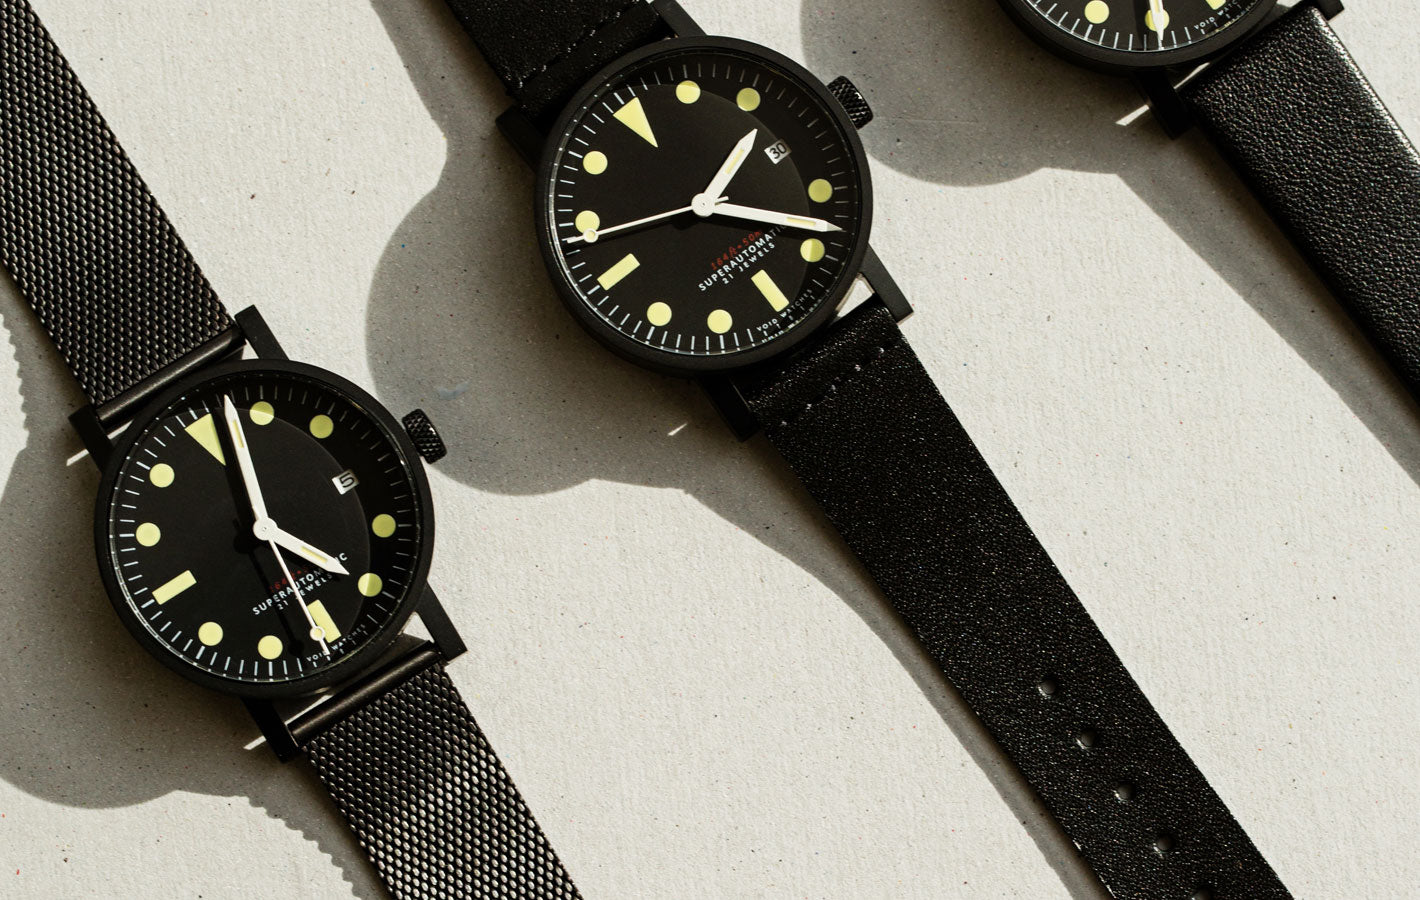 The V03M-BL/BL from VOID Watches, designed by David Ericsson.